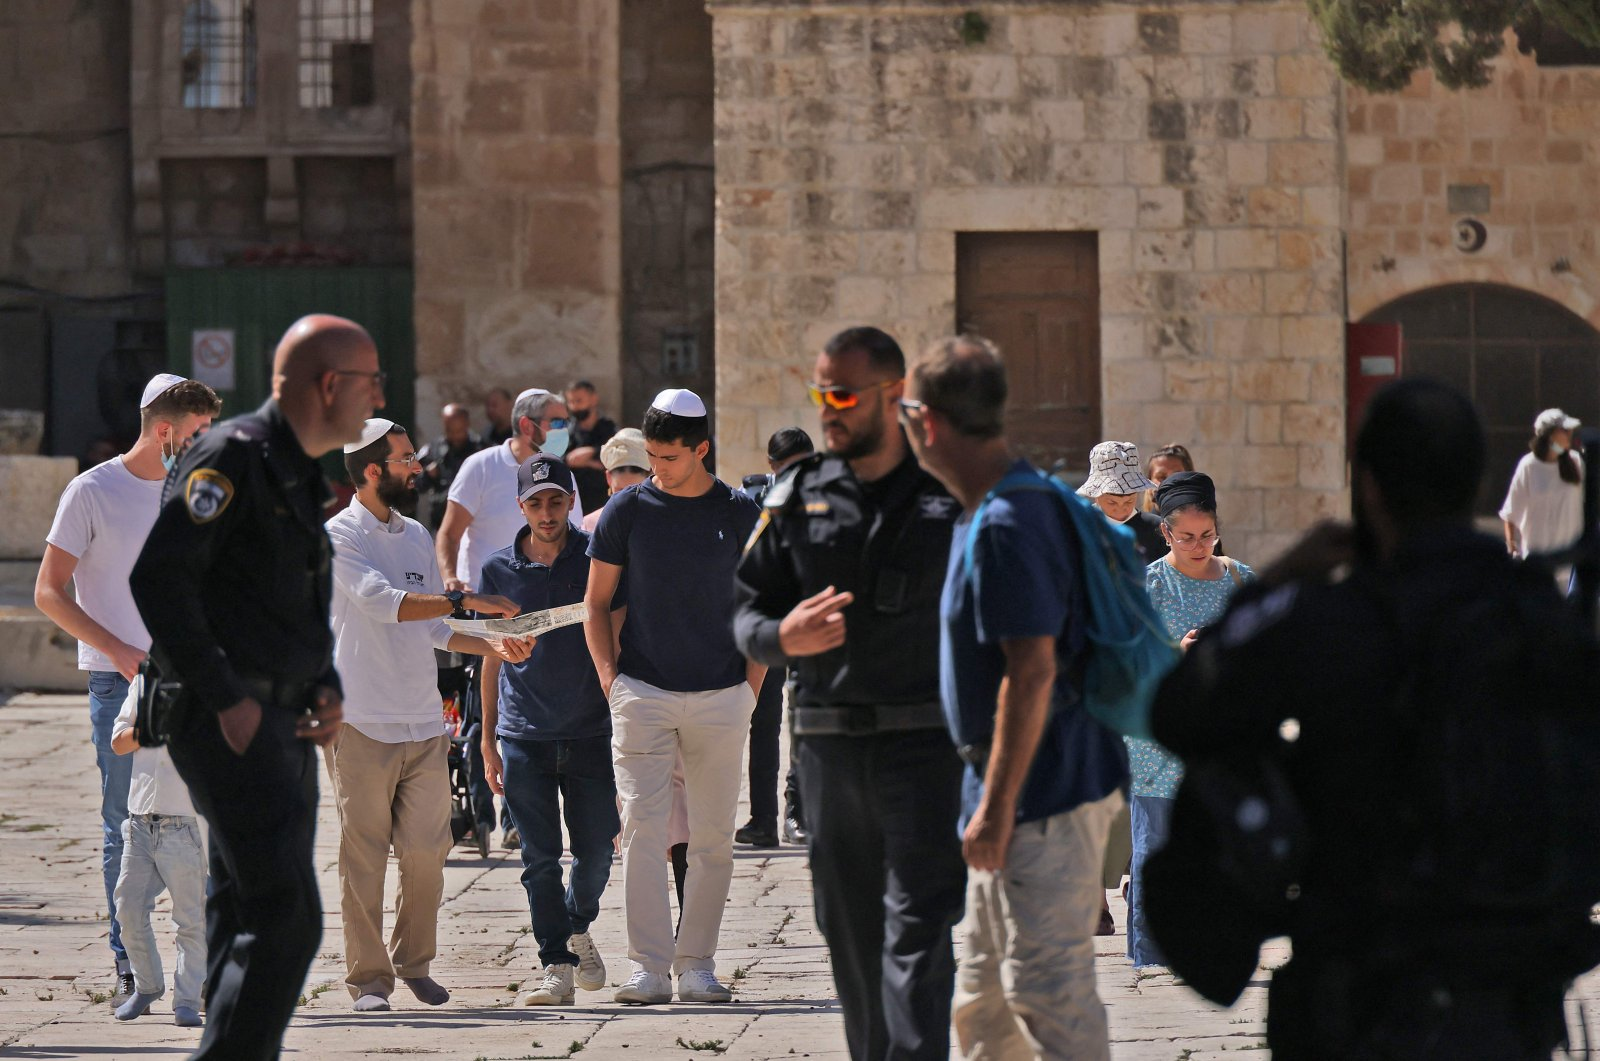 A group of religious Jews visit the Al-Aqsa Mosque compound in East Jerusalem's Old City, occupied Palestine, Oct. 7, 2021. (AFP Photo)